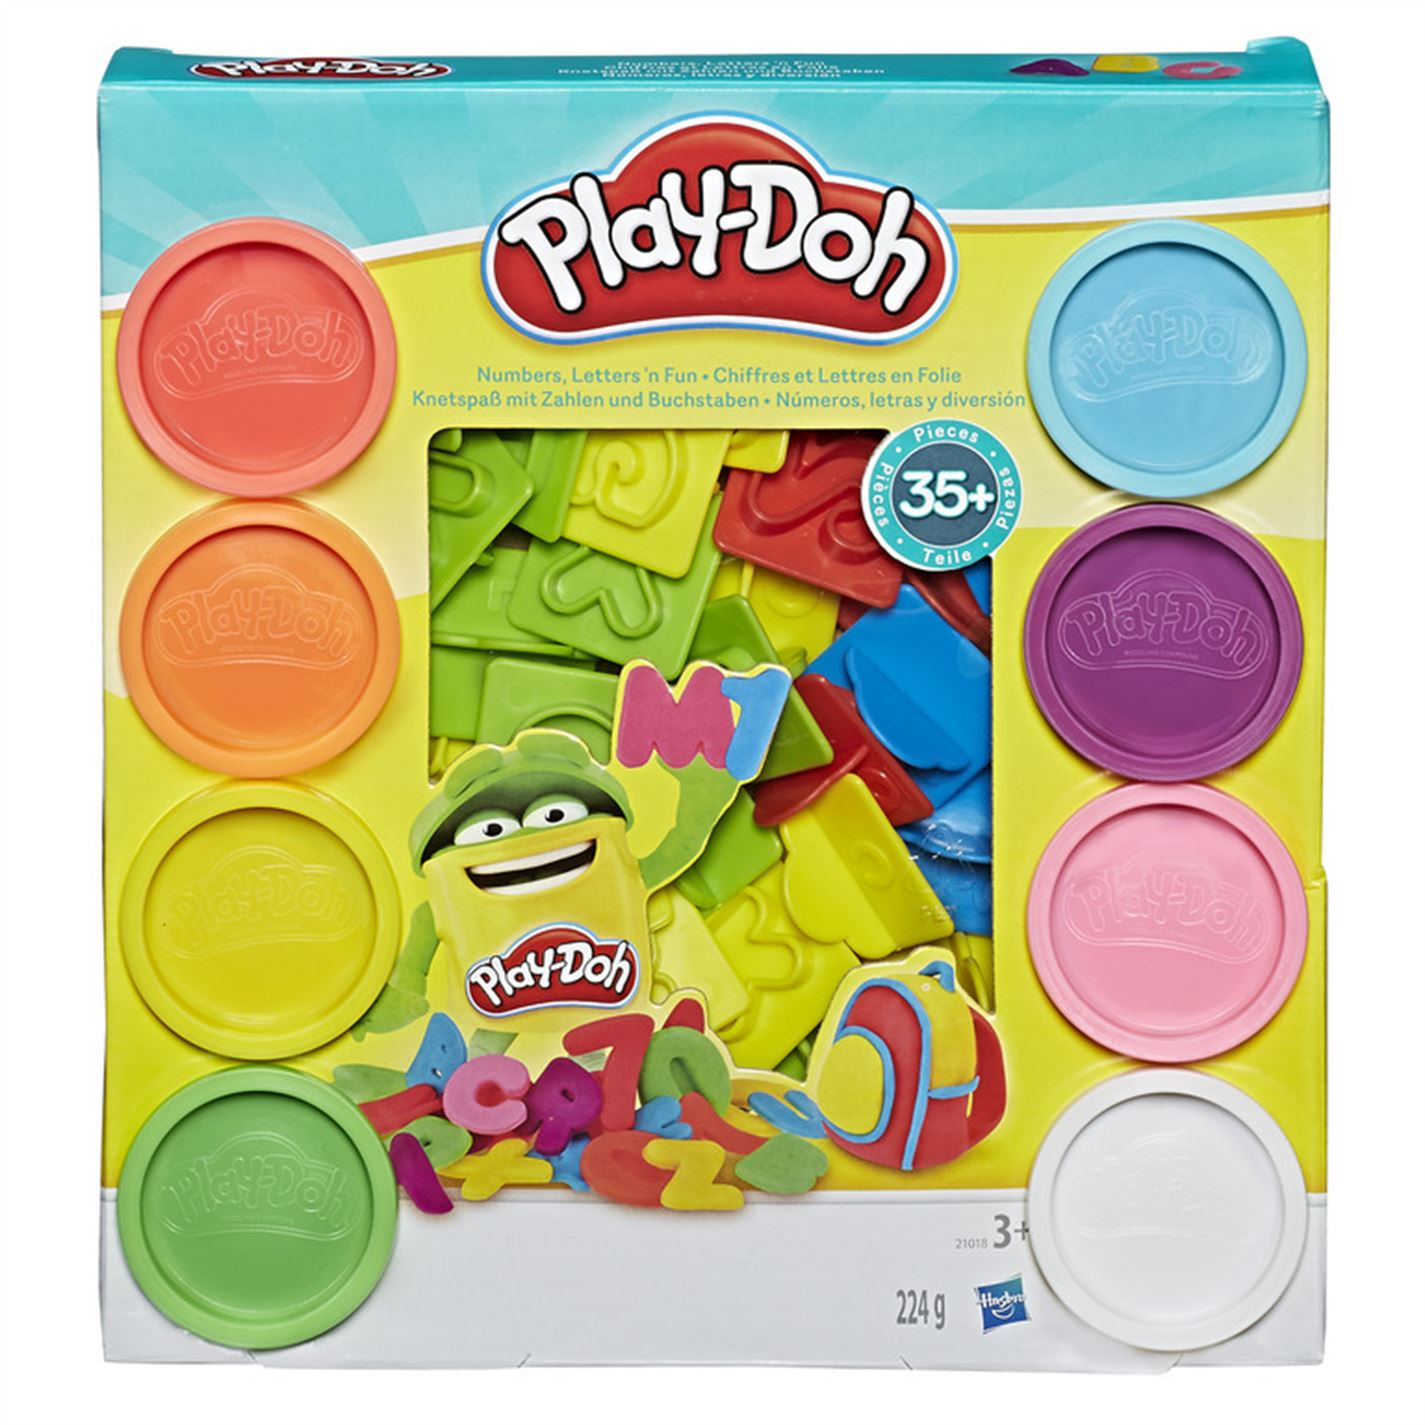 Play-Doh Play-Doh Numbers and Letters multicolor